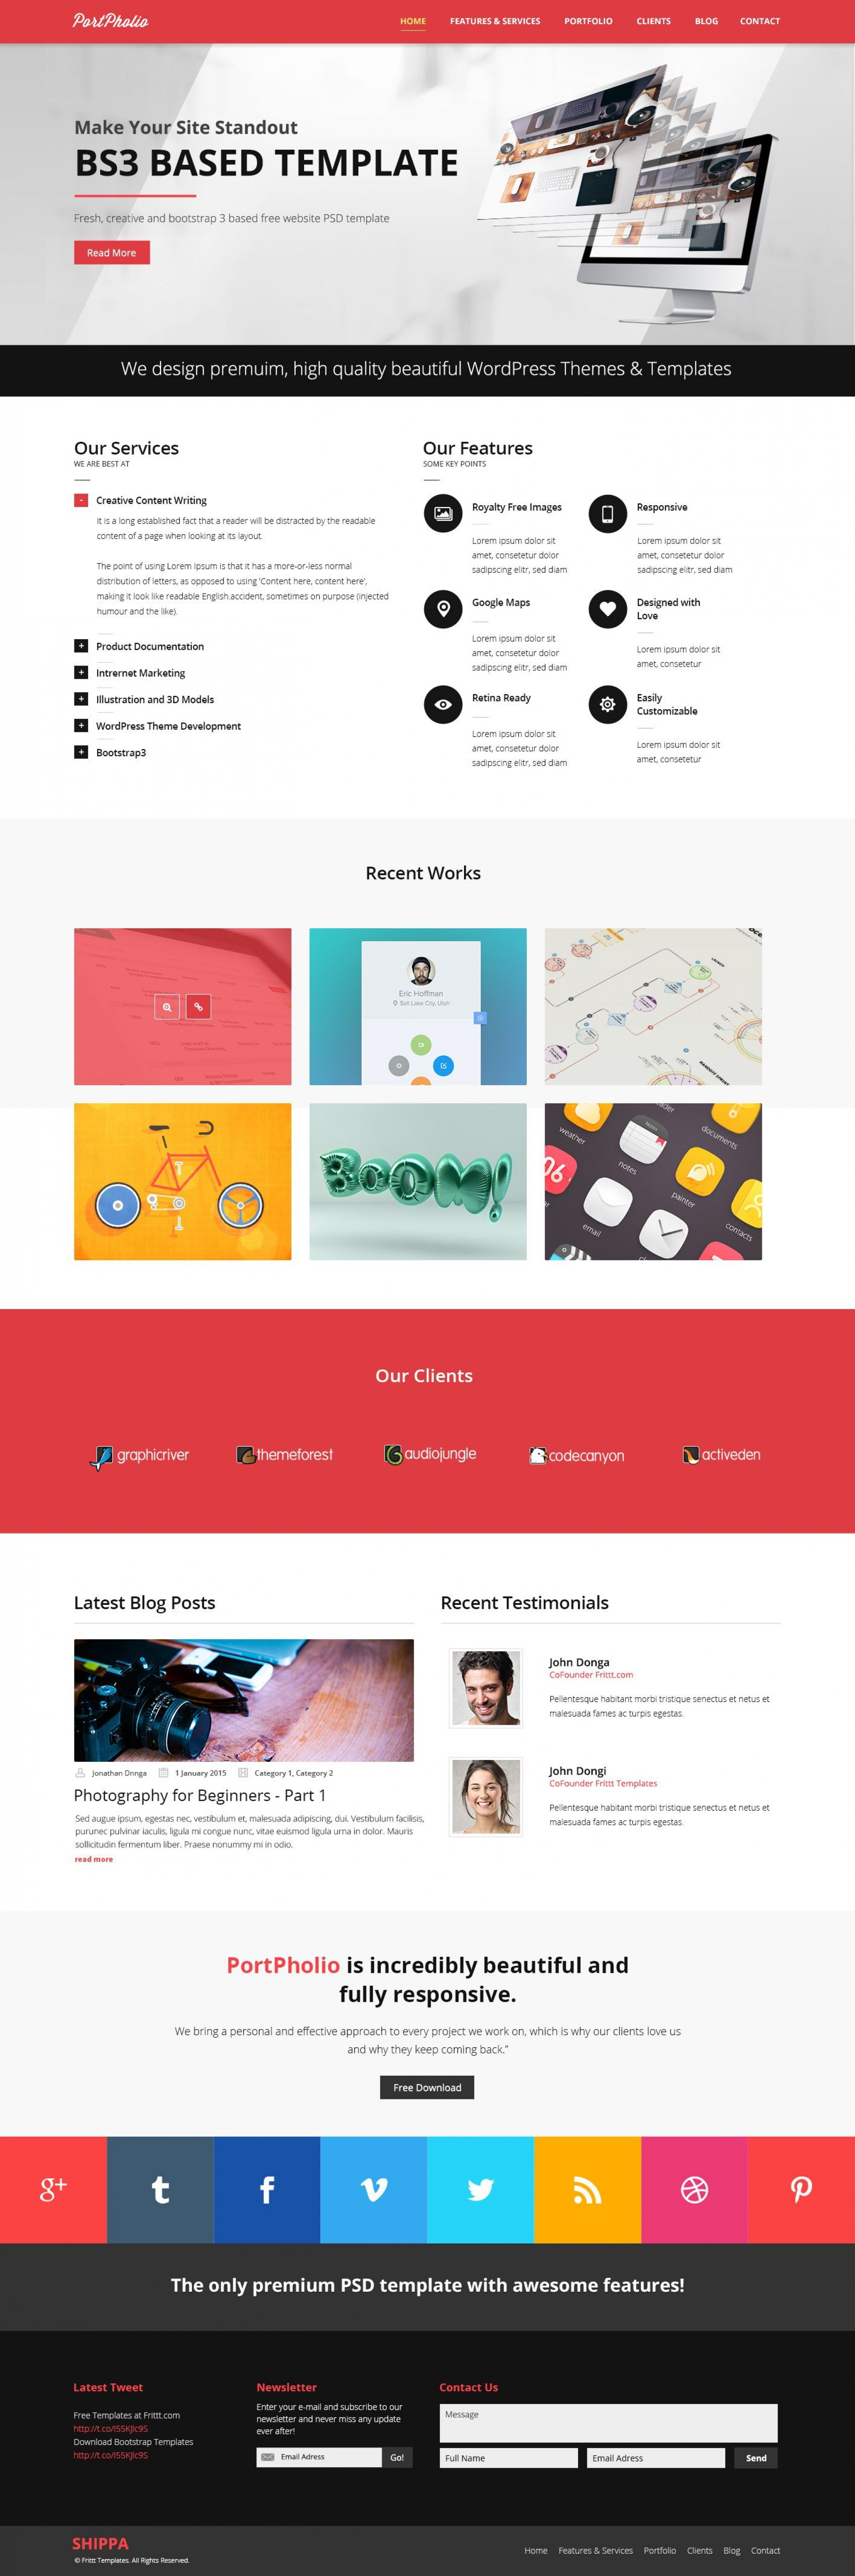 004 Breathtaking Single Page Web Template Inspiration  Templates One Website Free Download Html5 Bootstrap1920